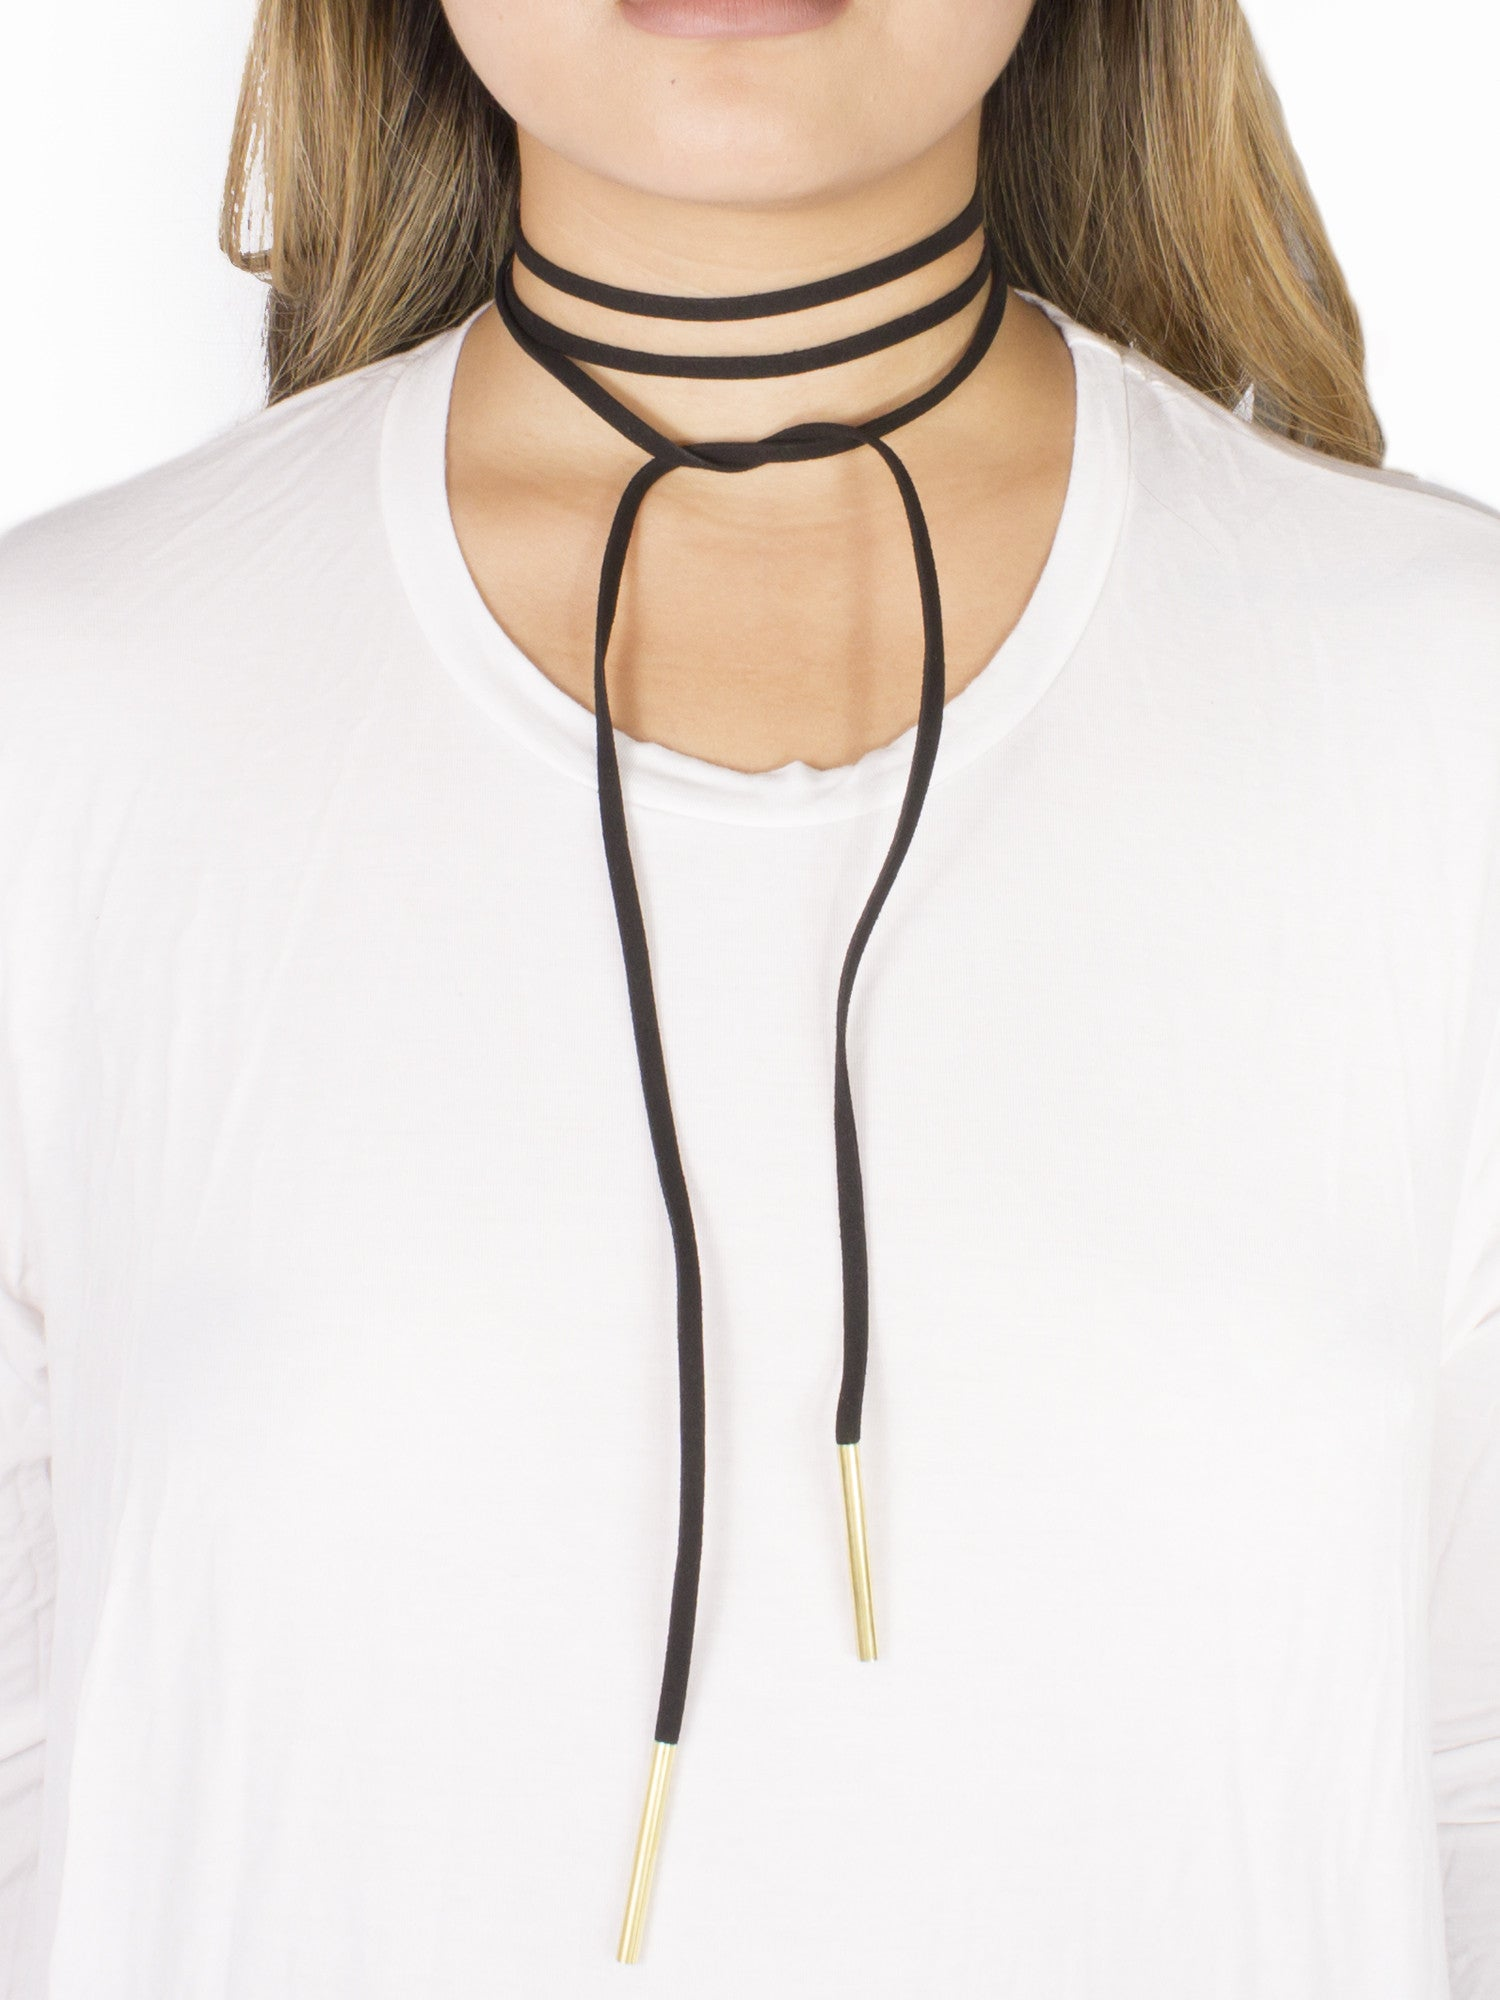 Black Clarity Leatherette Wrap Around Choker - Gold Soul